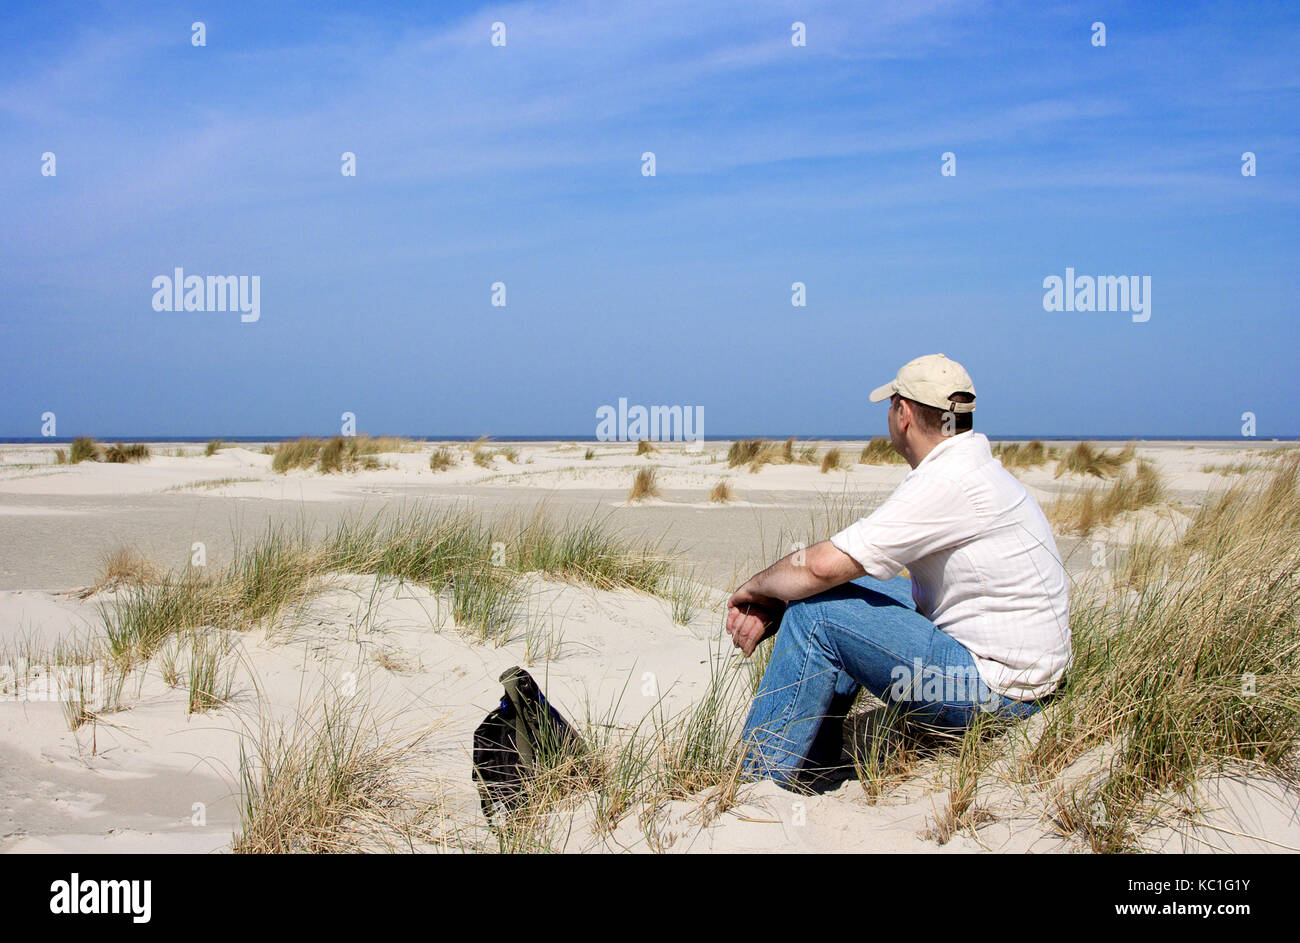 Man is sitting in the dunes, Nordeney, Germany. - Stock Image